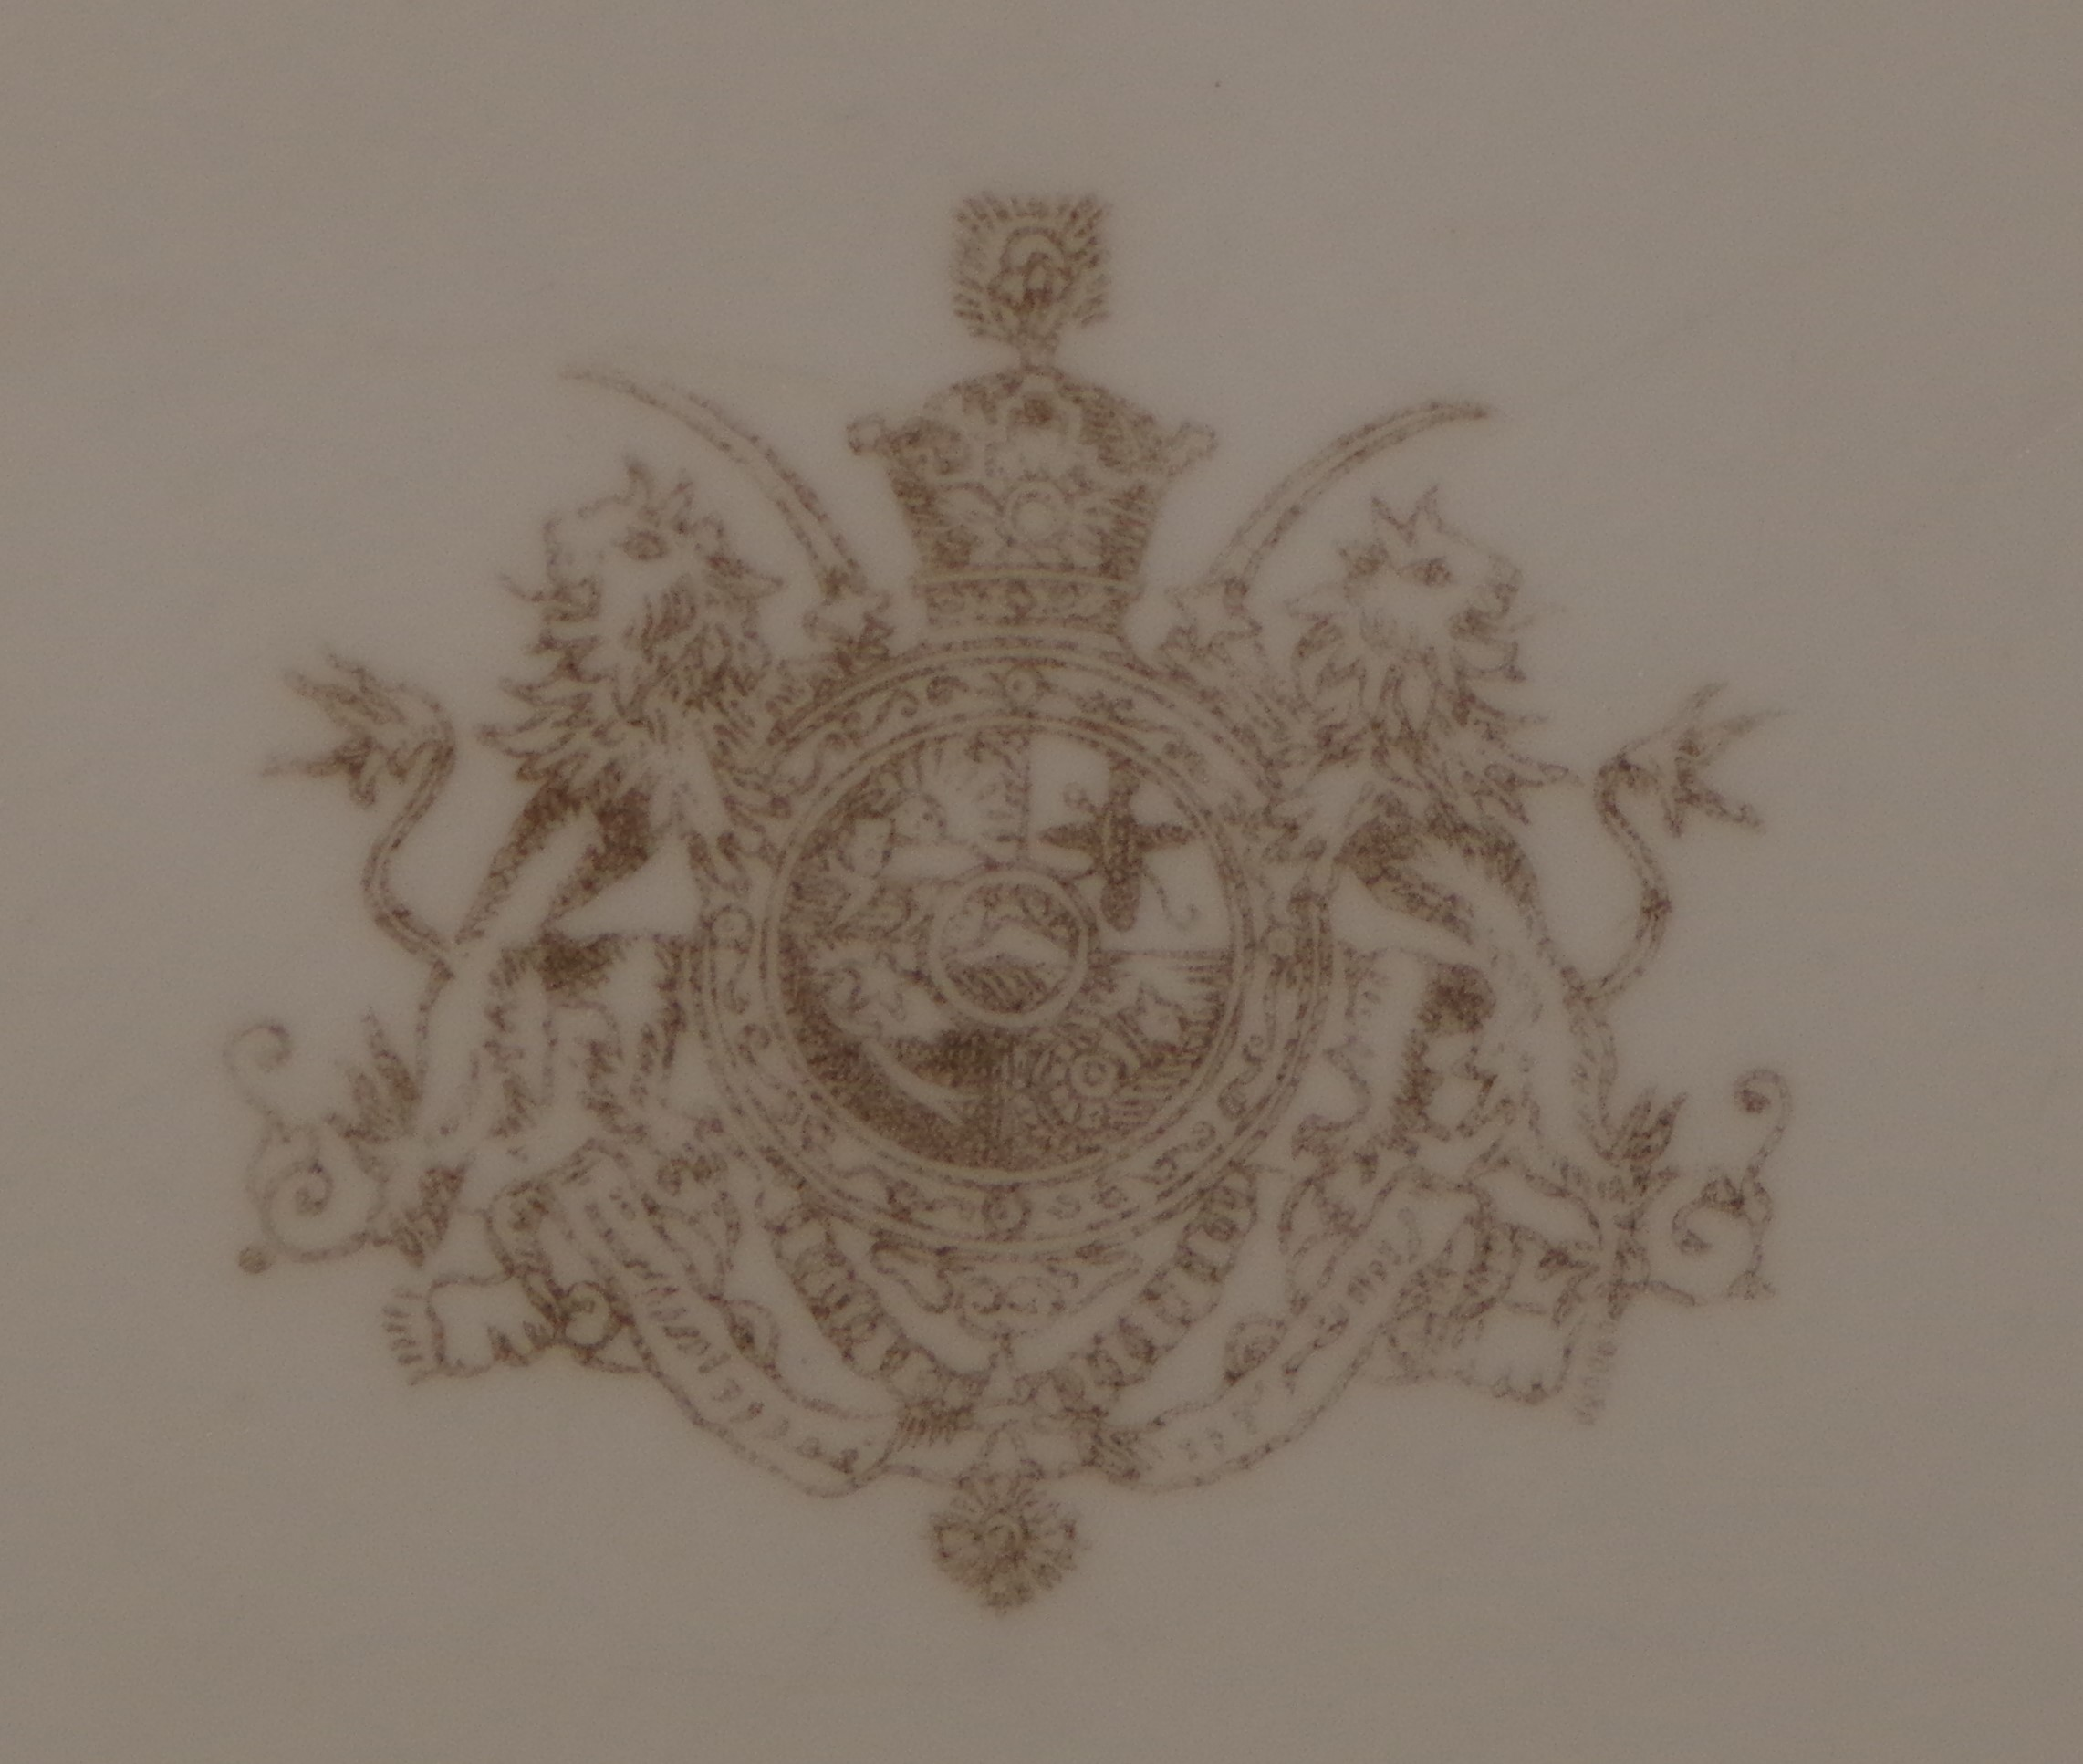 royal-crown-derby-shah-of-persia-heraldic-gold-A1066-crest-close-up